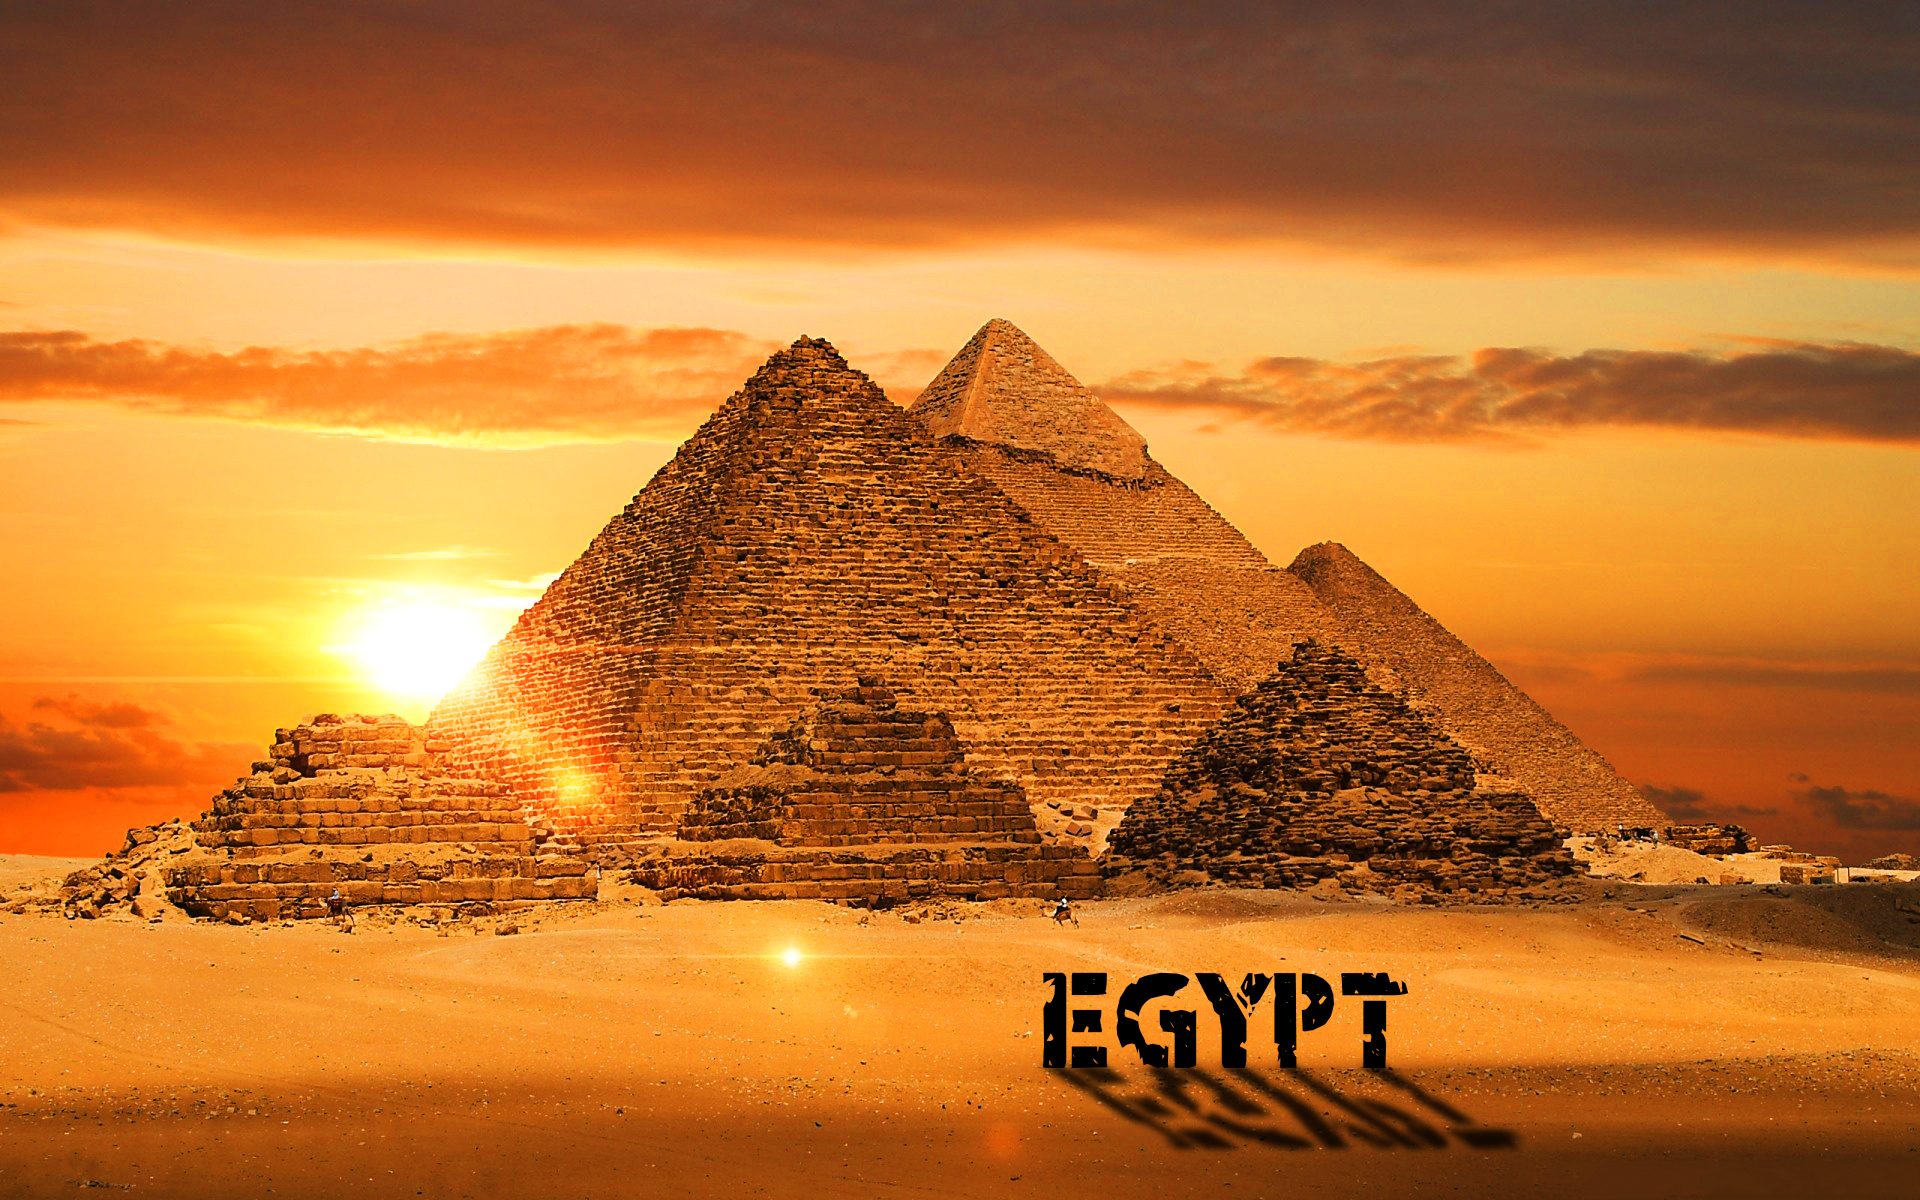 Sunset over Pyramids in Egypt 254.96 Kb